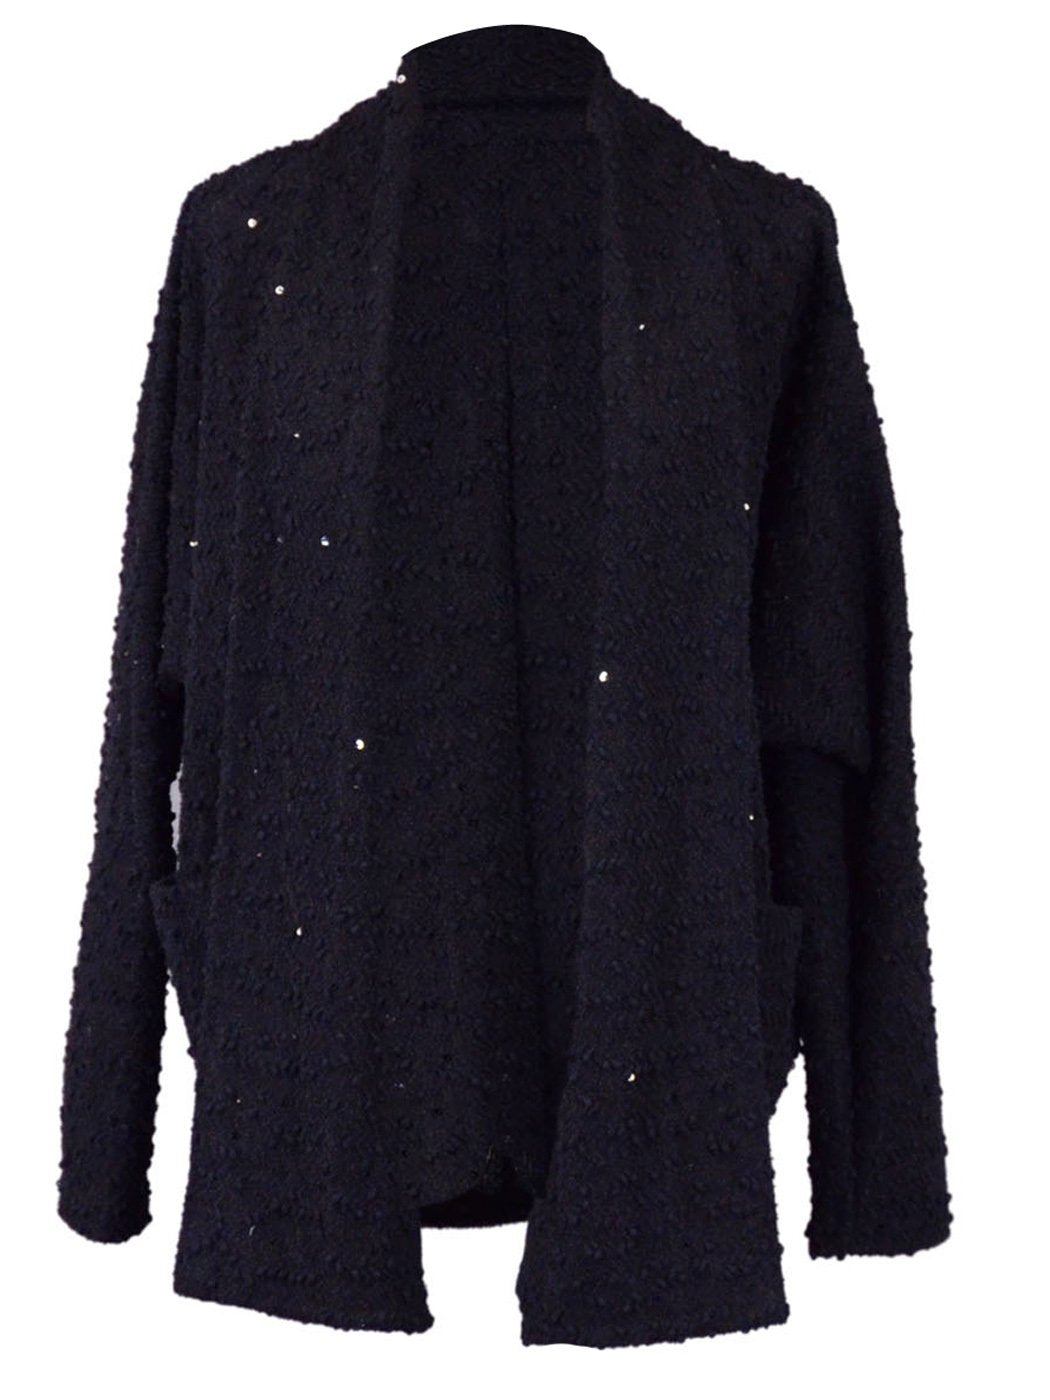 Paper Crane Black Long Sleeved Open Knitted Cardigan With Sequin Detailing - Anna-Kaci | ALILANG.COM